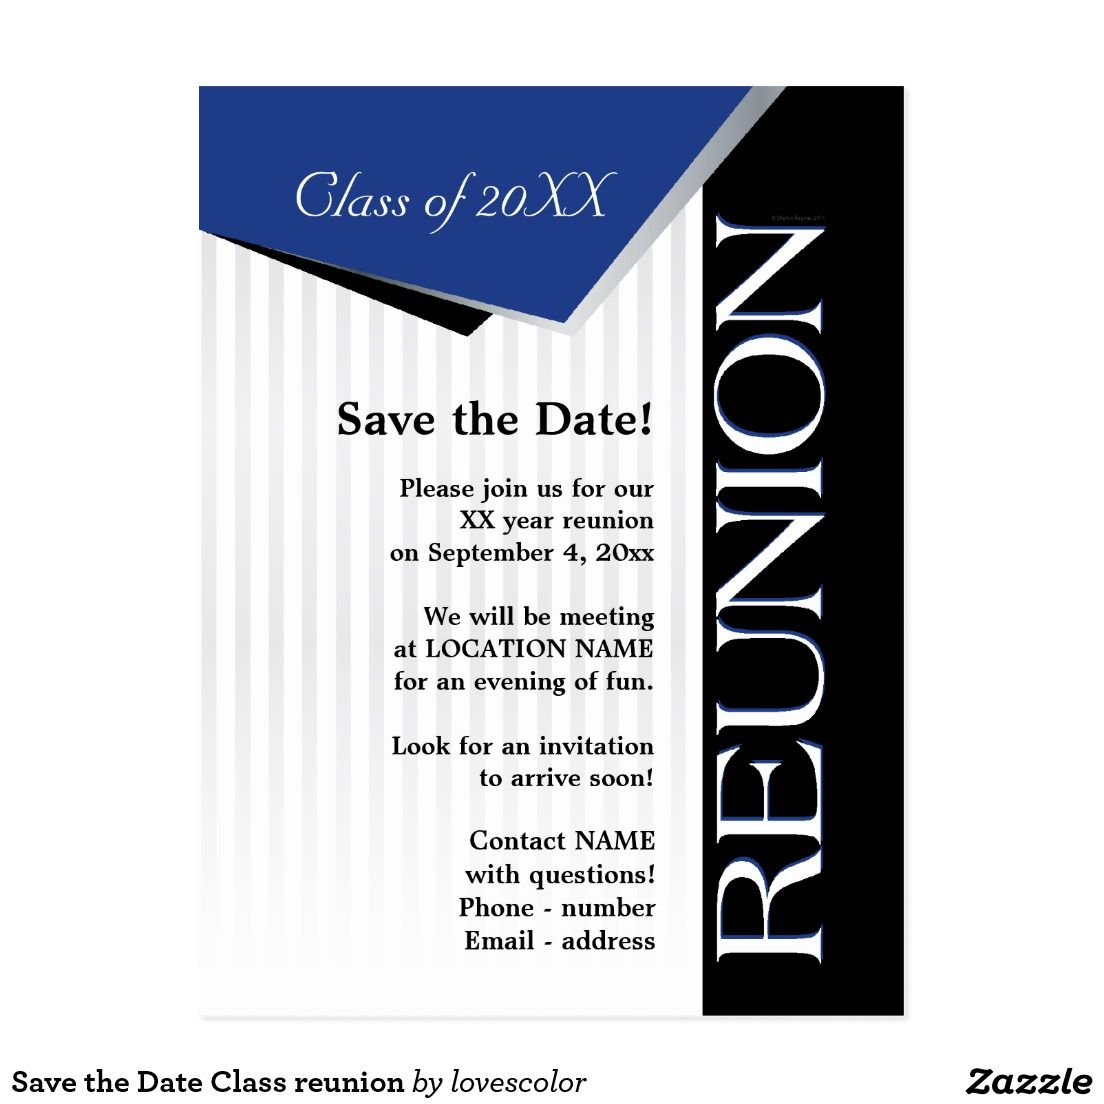 Save The Date Class Reunion Announcement Postcard Zazzle Com Class Reunion Class Reunion Invitations Reunion Invitations